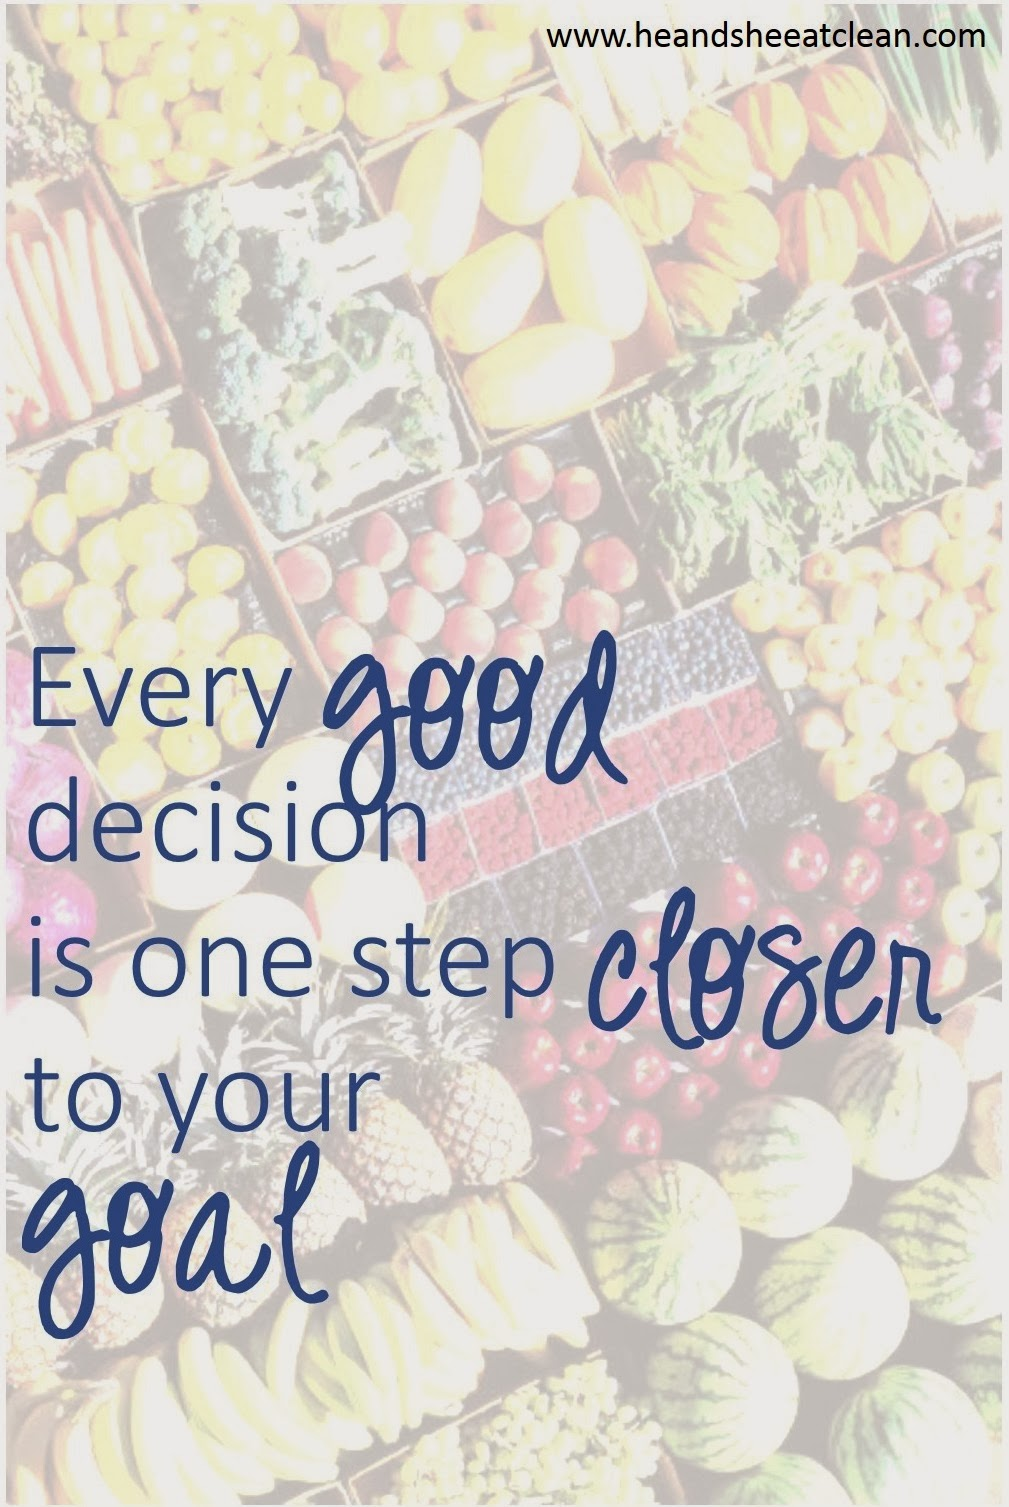 Every-good-decision-is-one-step-closer-to-your-goals-Eat-Clean-free-motivational-cell-phone-wallpap-wallpaper-wp5206253